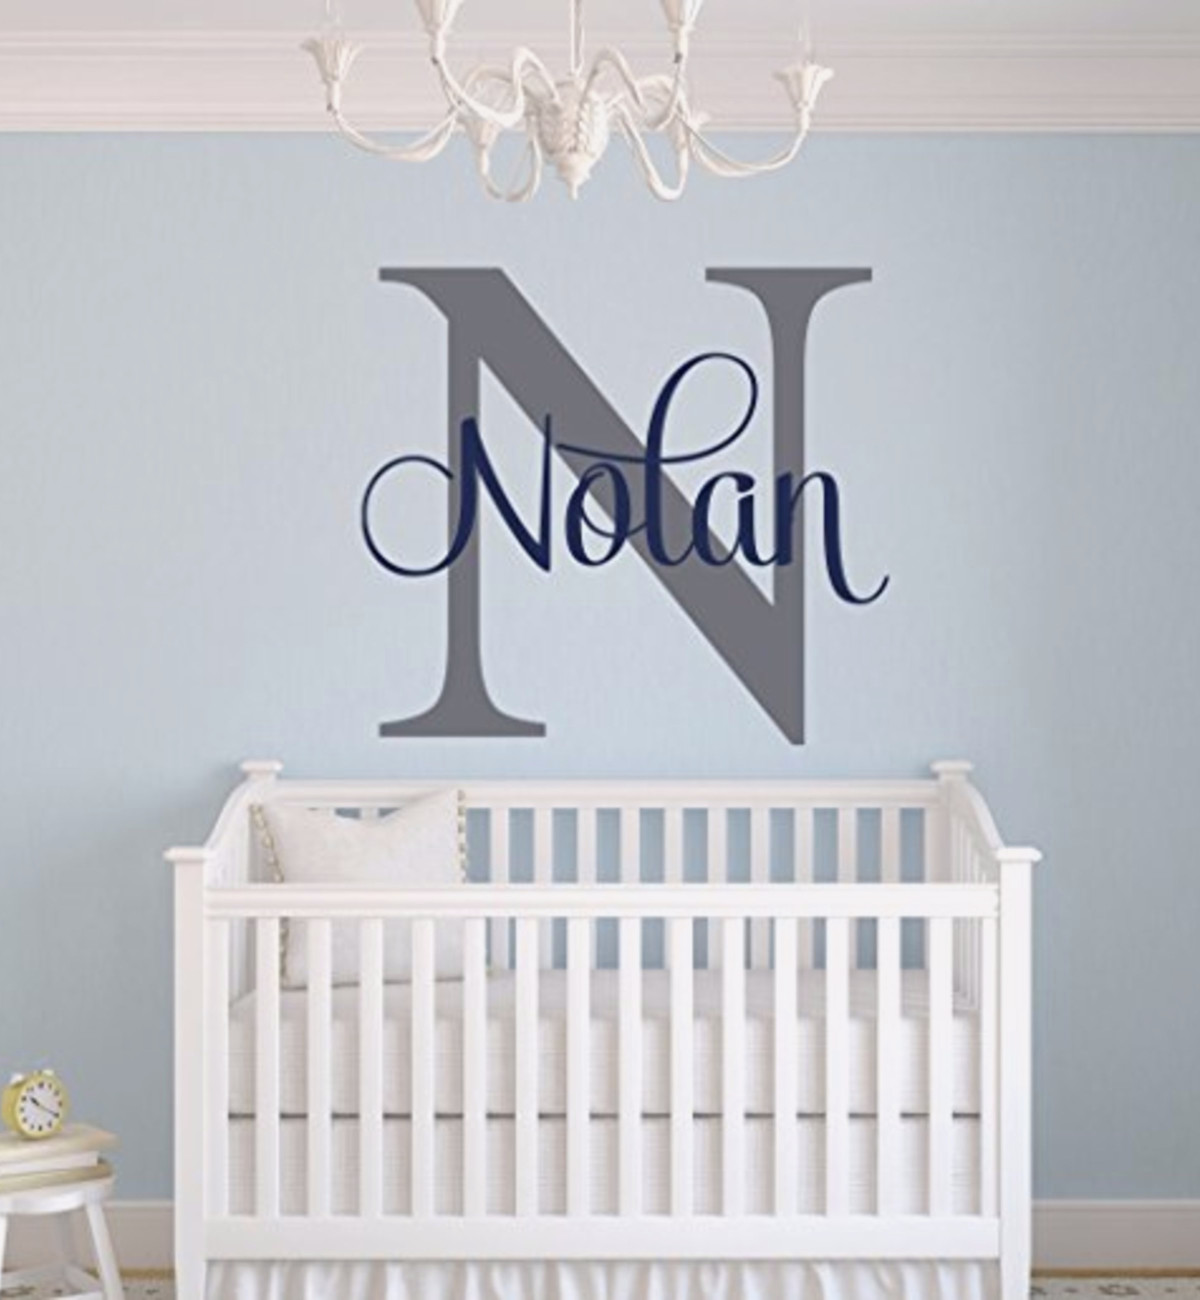 Baby boy nursery wall decor ideas home design 2017 Boys wall decor